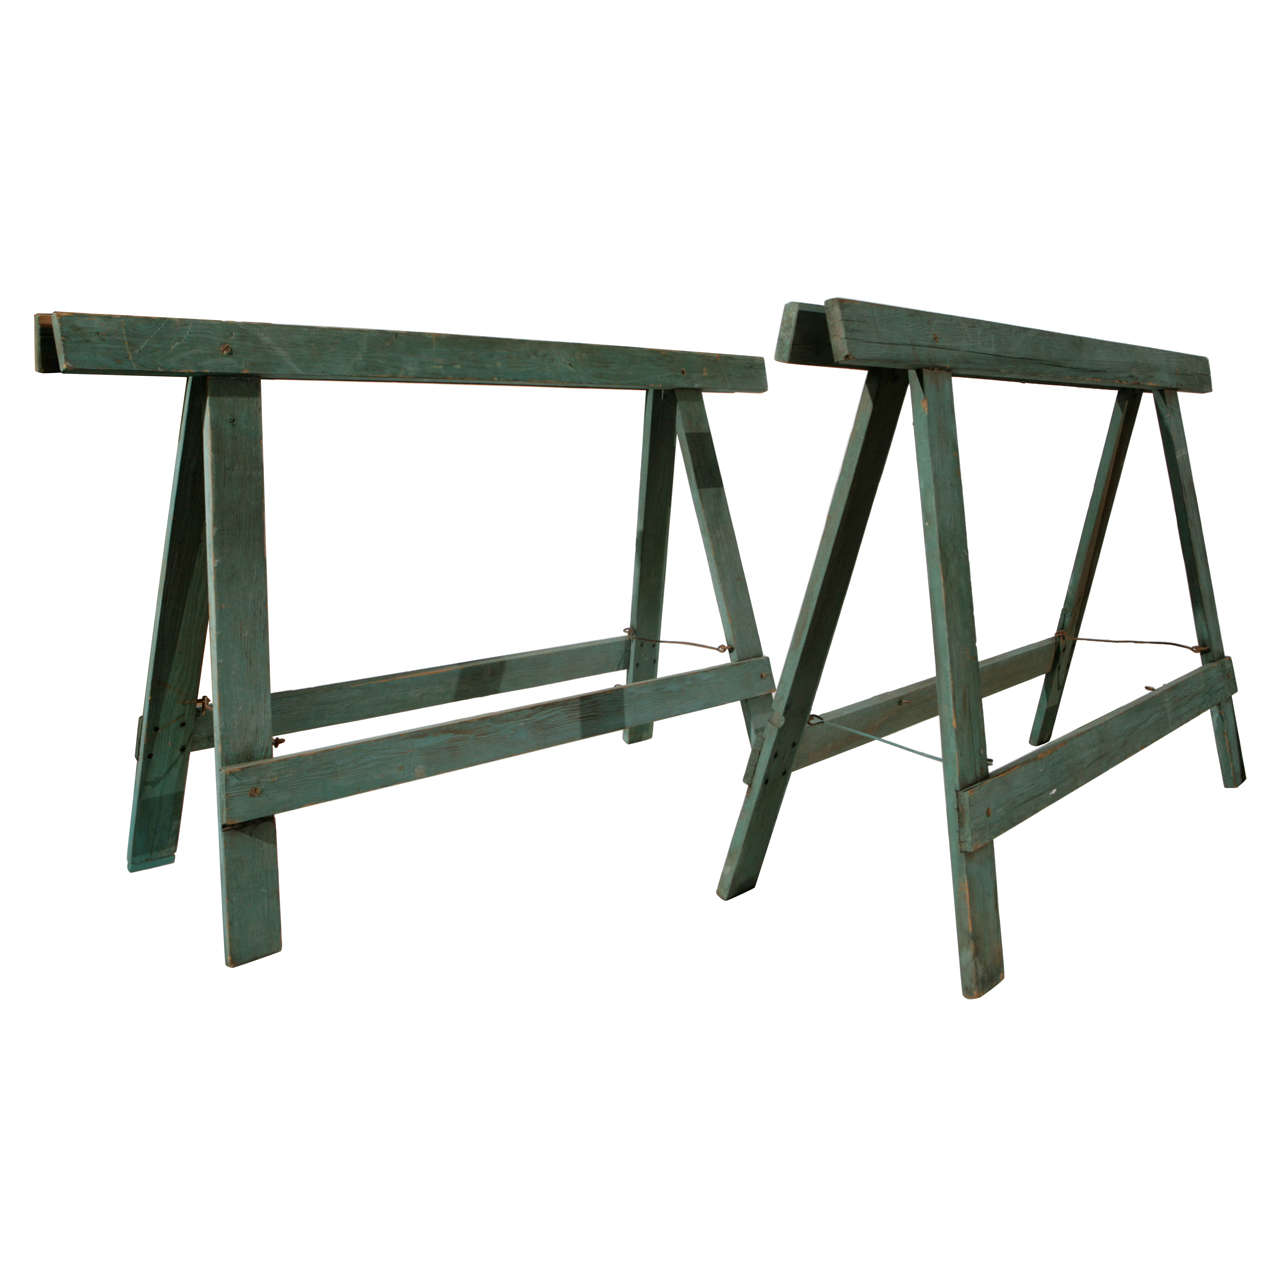 1940s Industrial Sawhorse Work Table Legs At 1stdibs